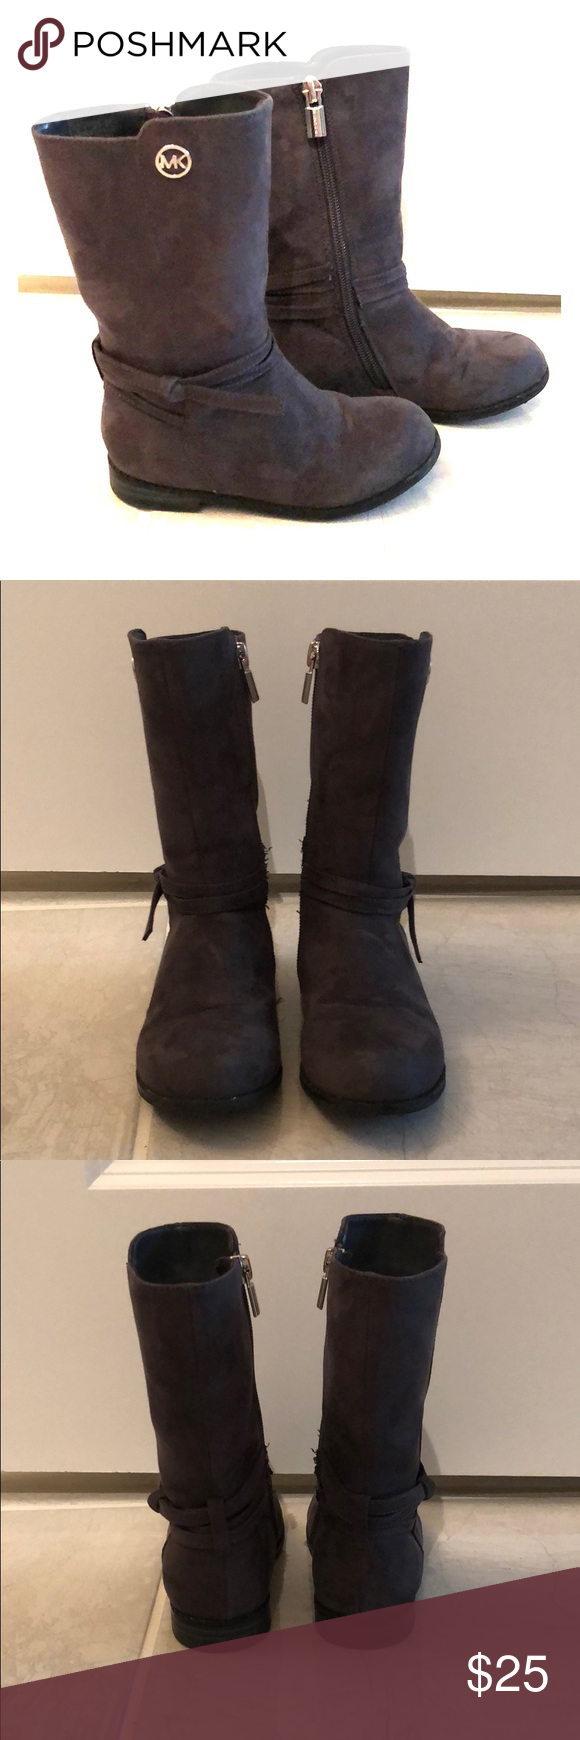 baecfffd8dc2 Toddler Girls Michael Kors Emma Carter-T Boots Gently used Toddler Girls  size 9 Michael Kors Emma Carter Boots in Charcoal Michael Kors Shoes Boots